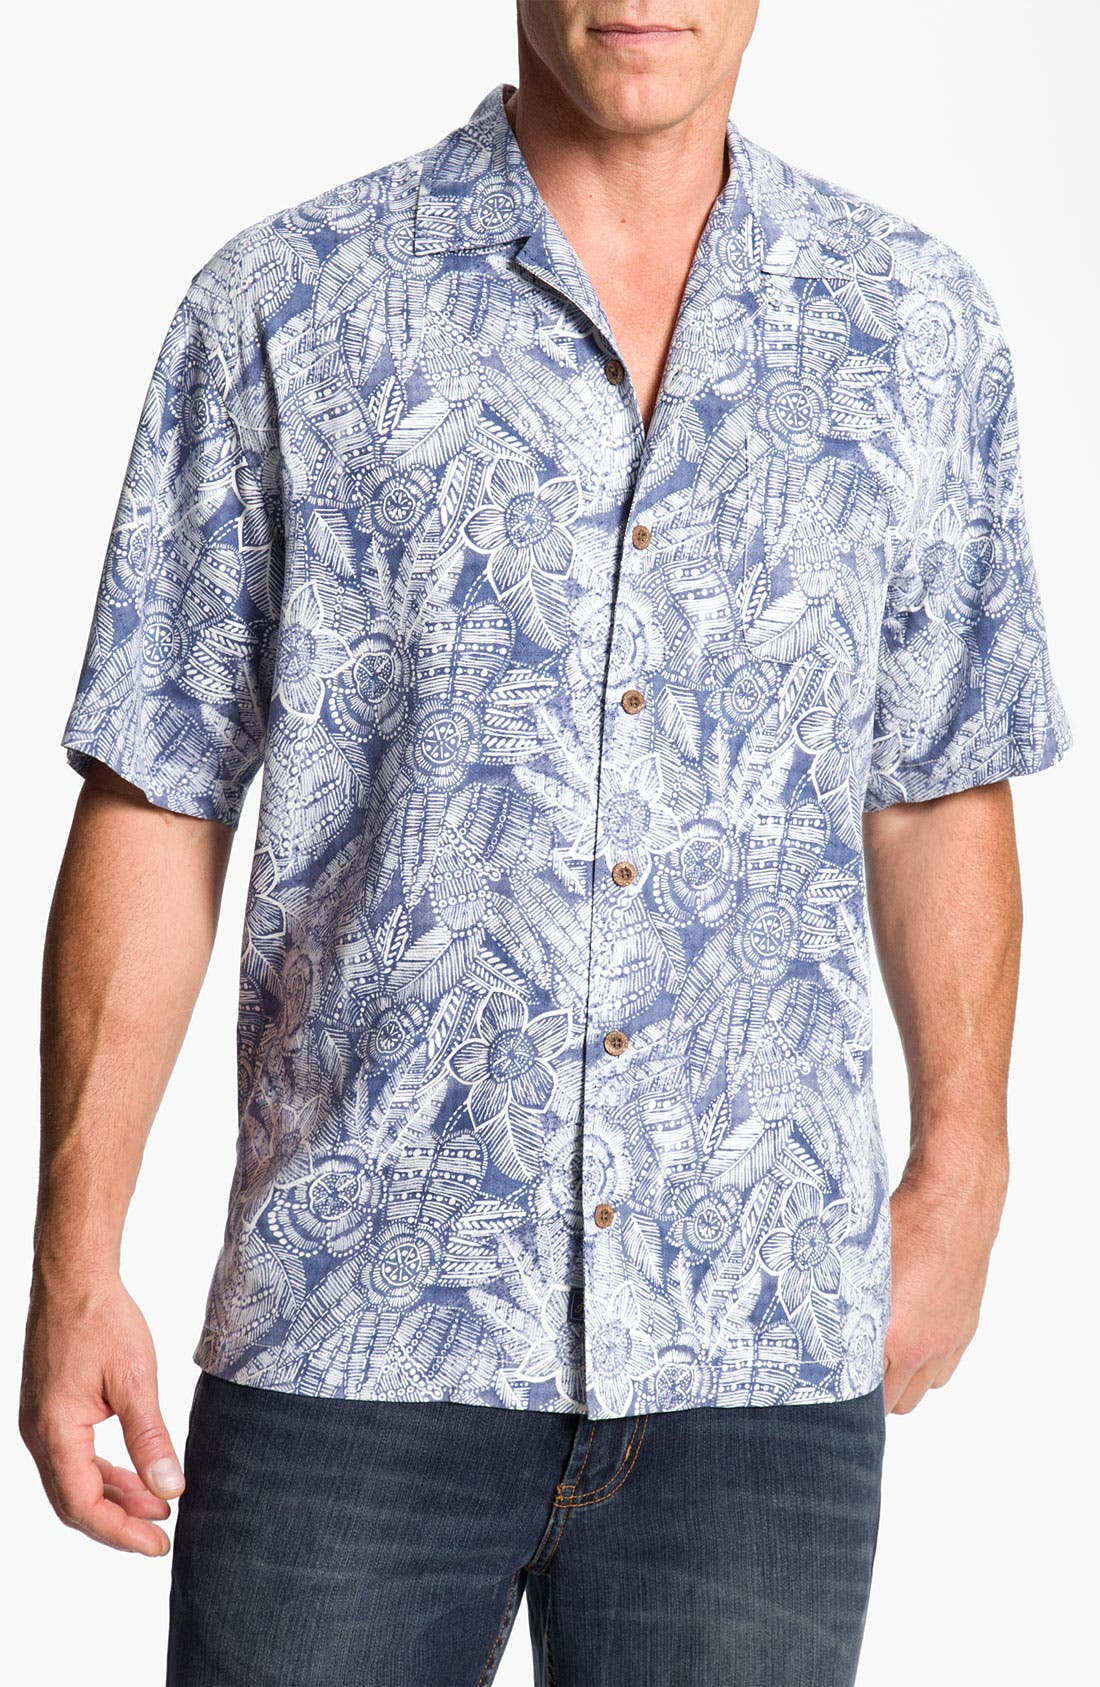 Alternate Image 1 Selected - Tommy Bahama 'Bou-Teak Floral' Silk Campshirt